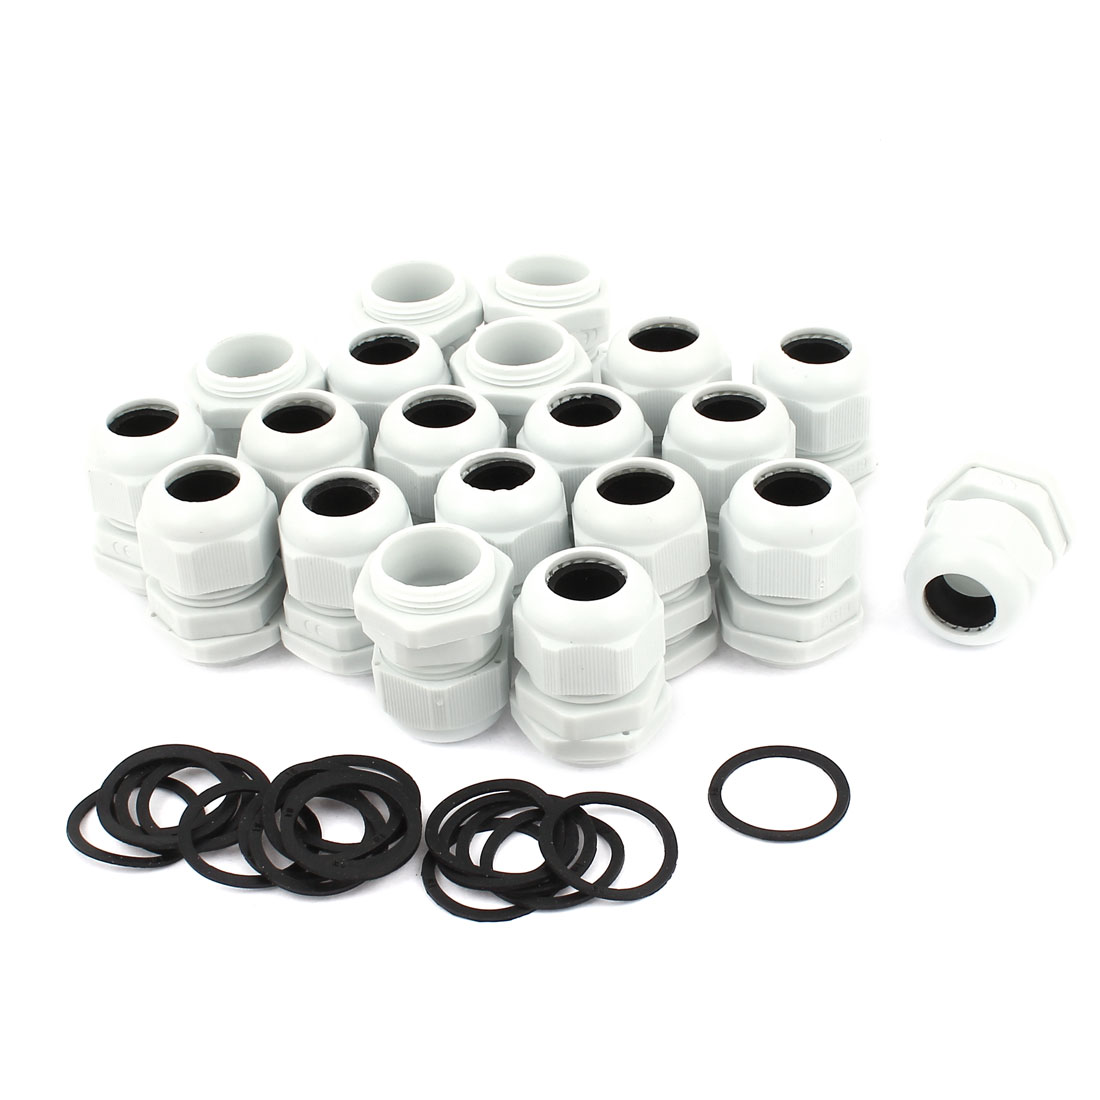 20 Pcs PG19 White Plastic 12-15mm Dia Waterproof Cable Glands Connectors